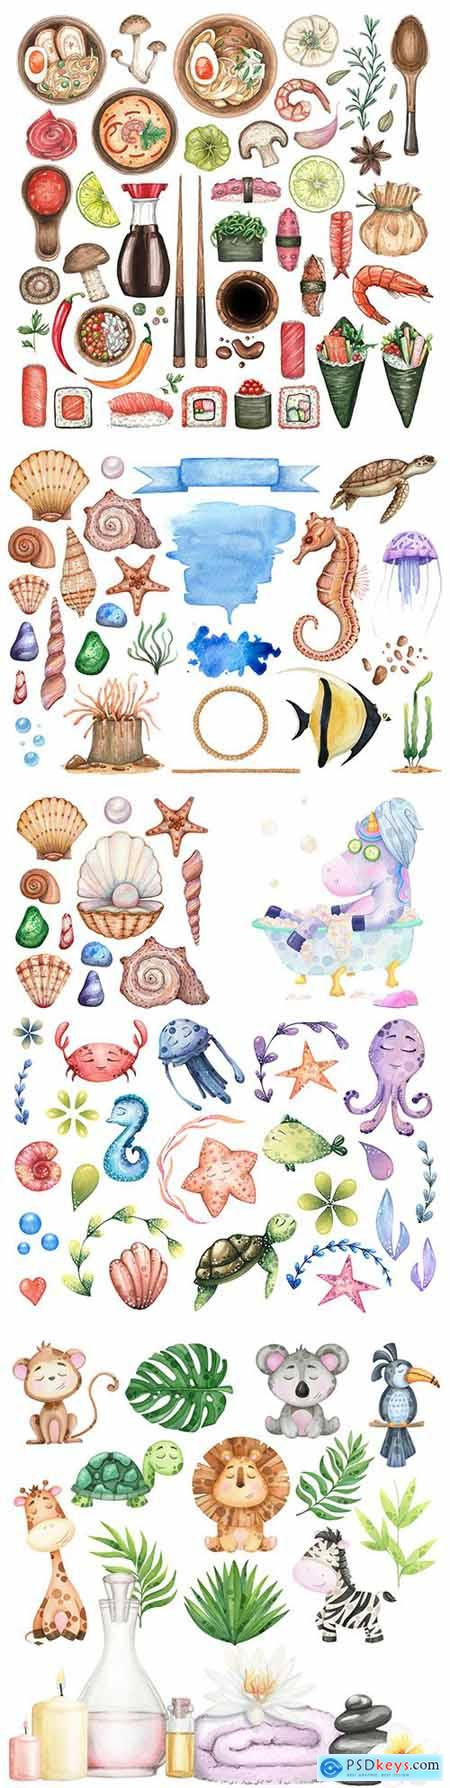 Tropical and marine animals with leaves watercolor set